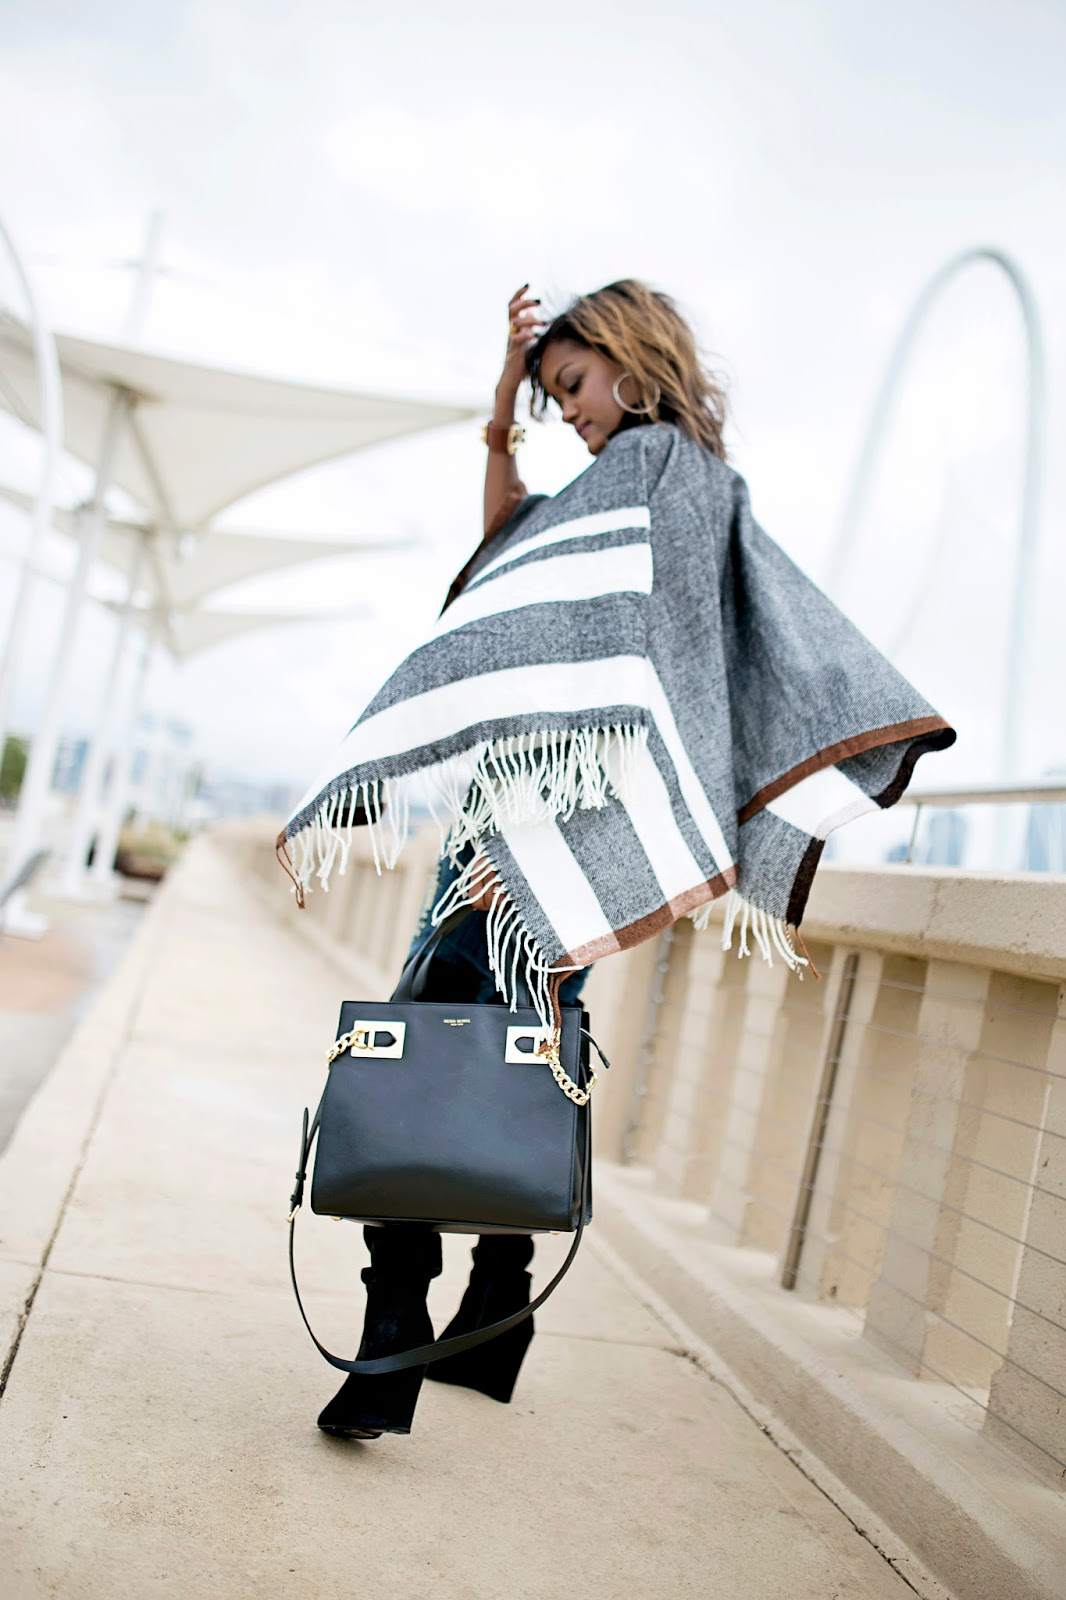 dallas fashion blogger, fashion blogger, black girl blogger, how to wear capes, over the knee boots, wedge boots, just fab over the knee boots, henri bendel bag, how to wear ripped jeans, fall fashion trend, cape, poncho, asos cape